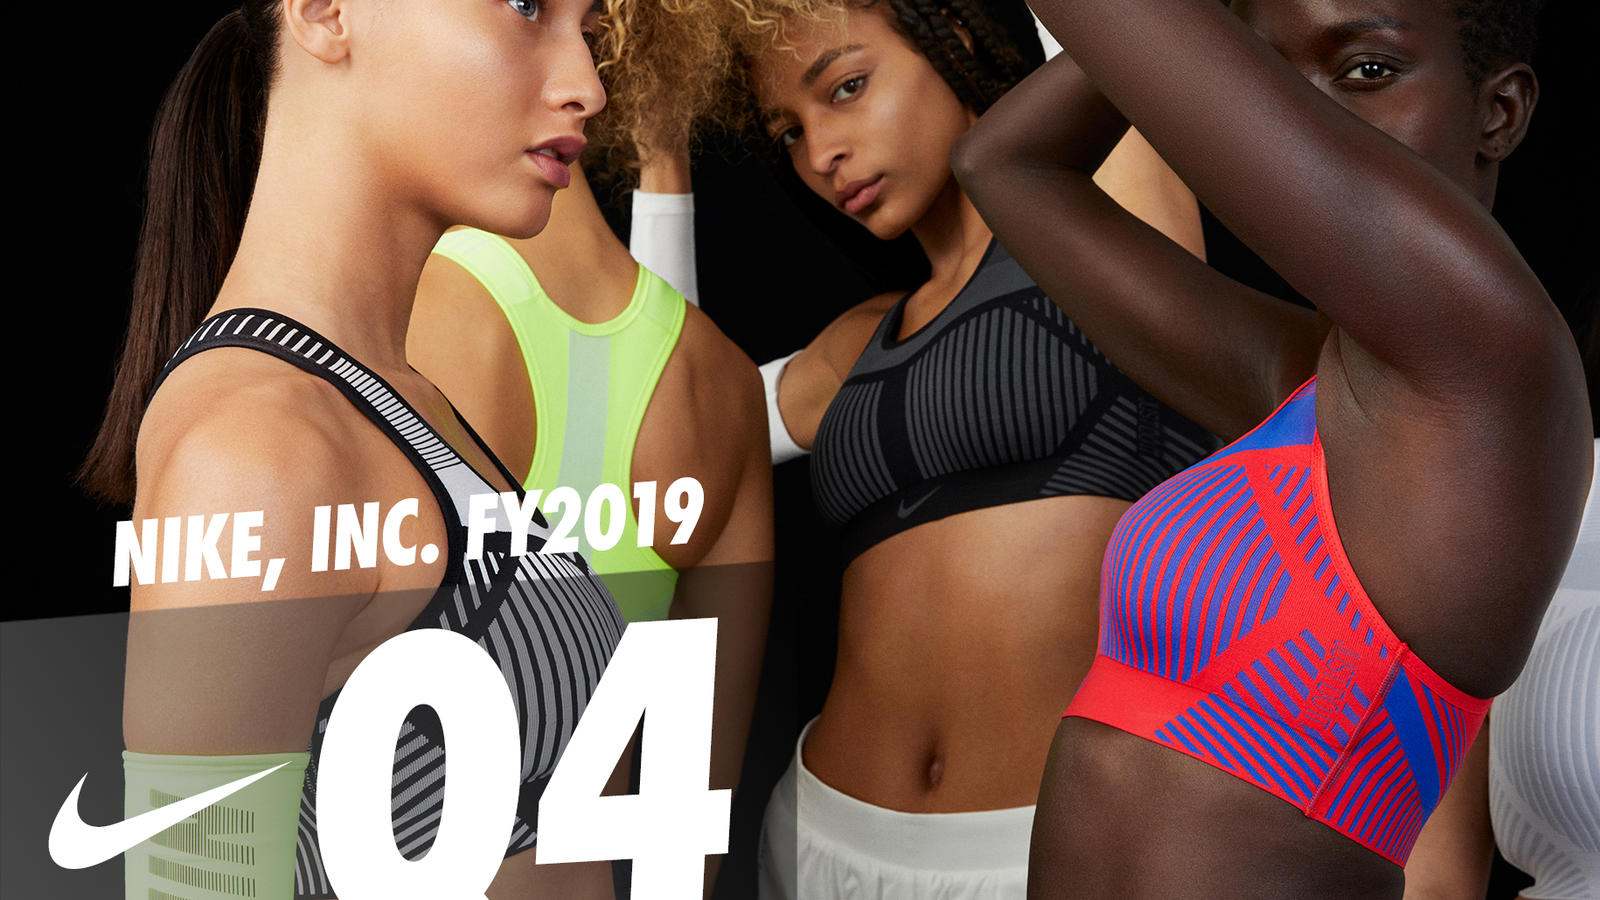 nike,-inc.-reports-fiscal-2019-fourth-quarter-and-full-year-results